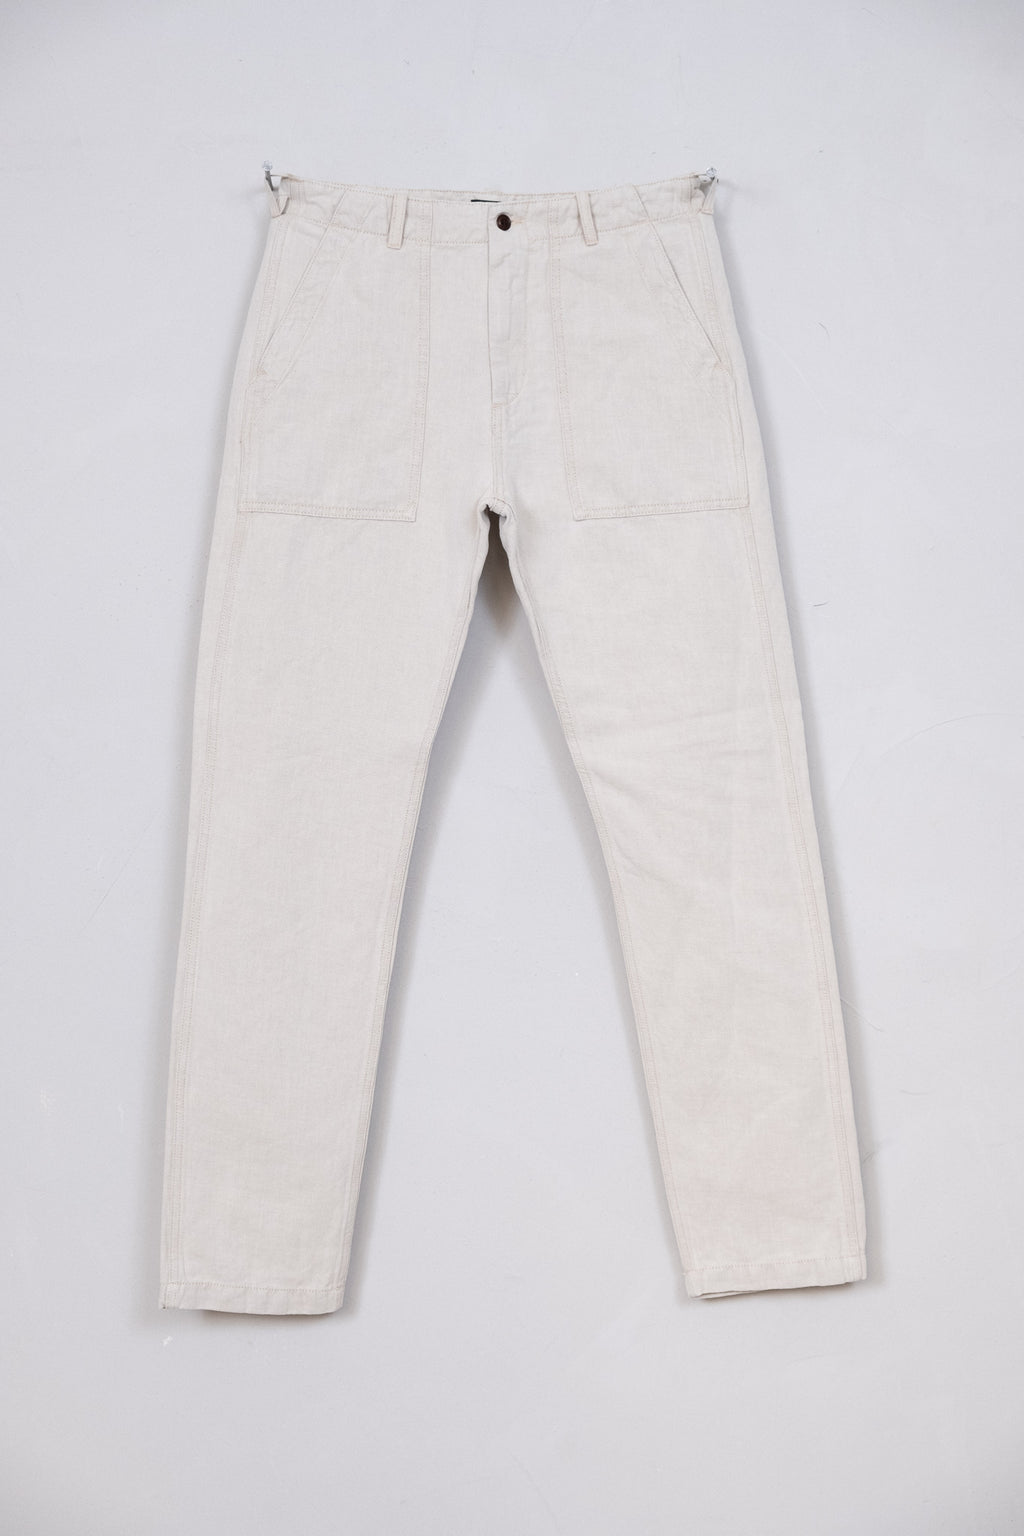 Fatigue Pant Cotton Linen Twill - Nature